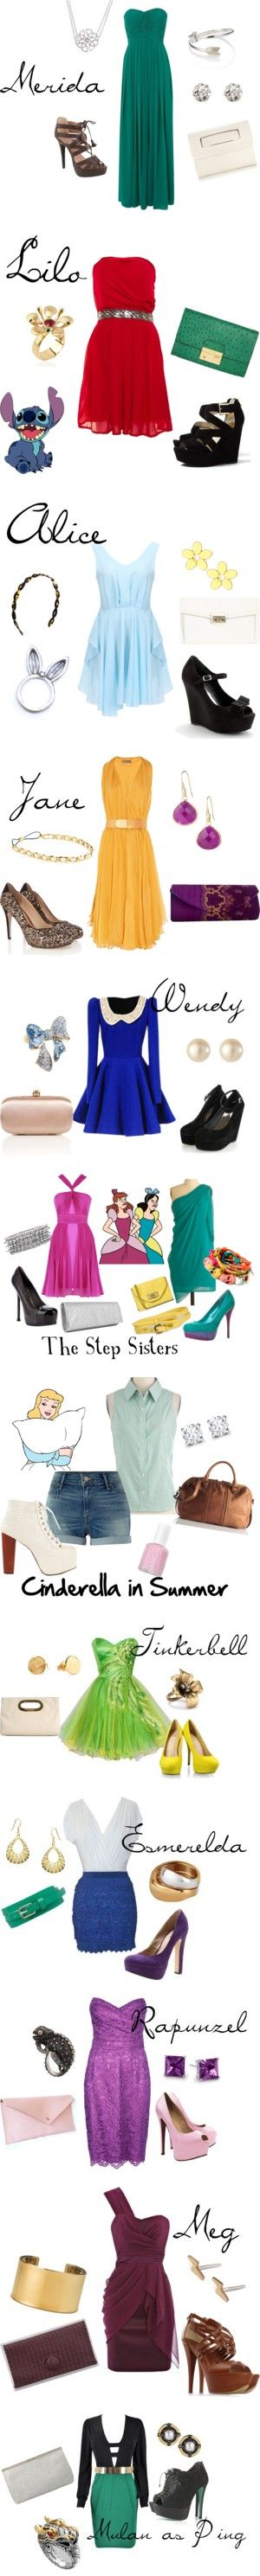 """Modern Princess"" by chargergirl on Polyvore"